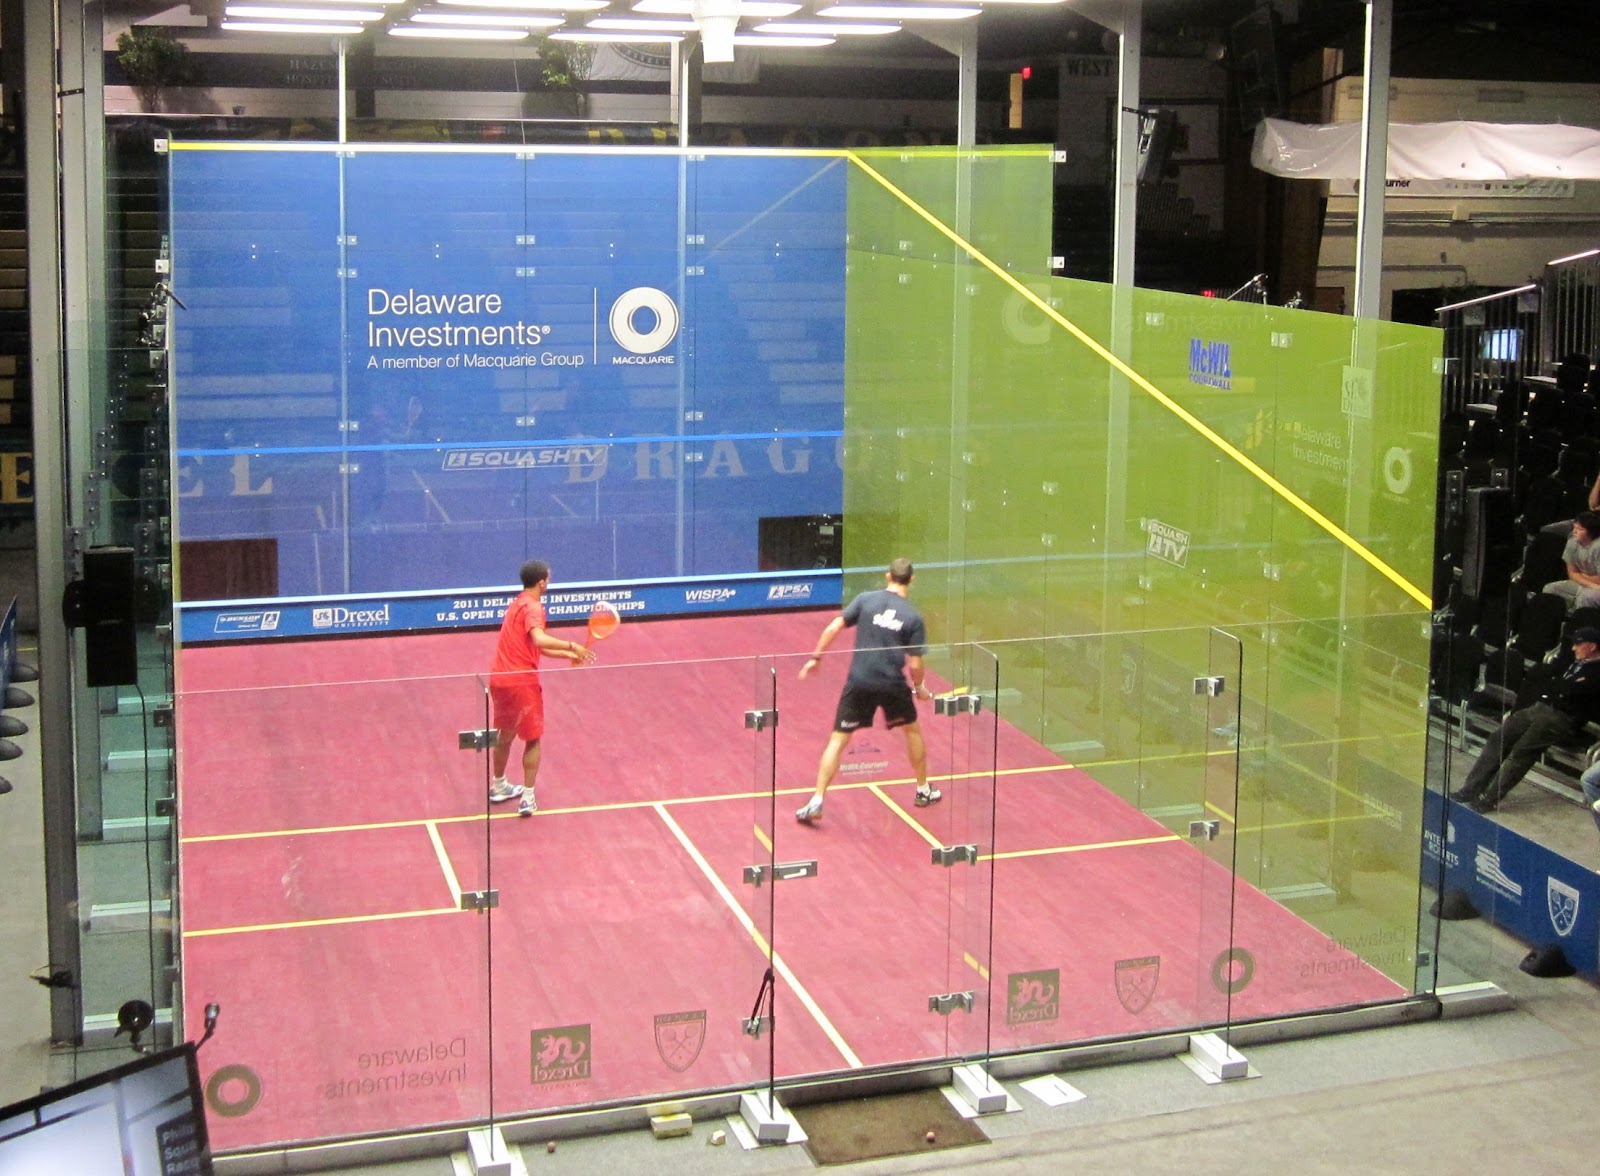 Professional squash match